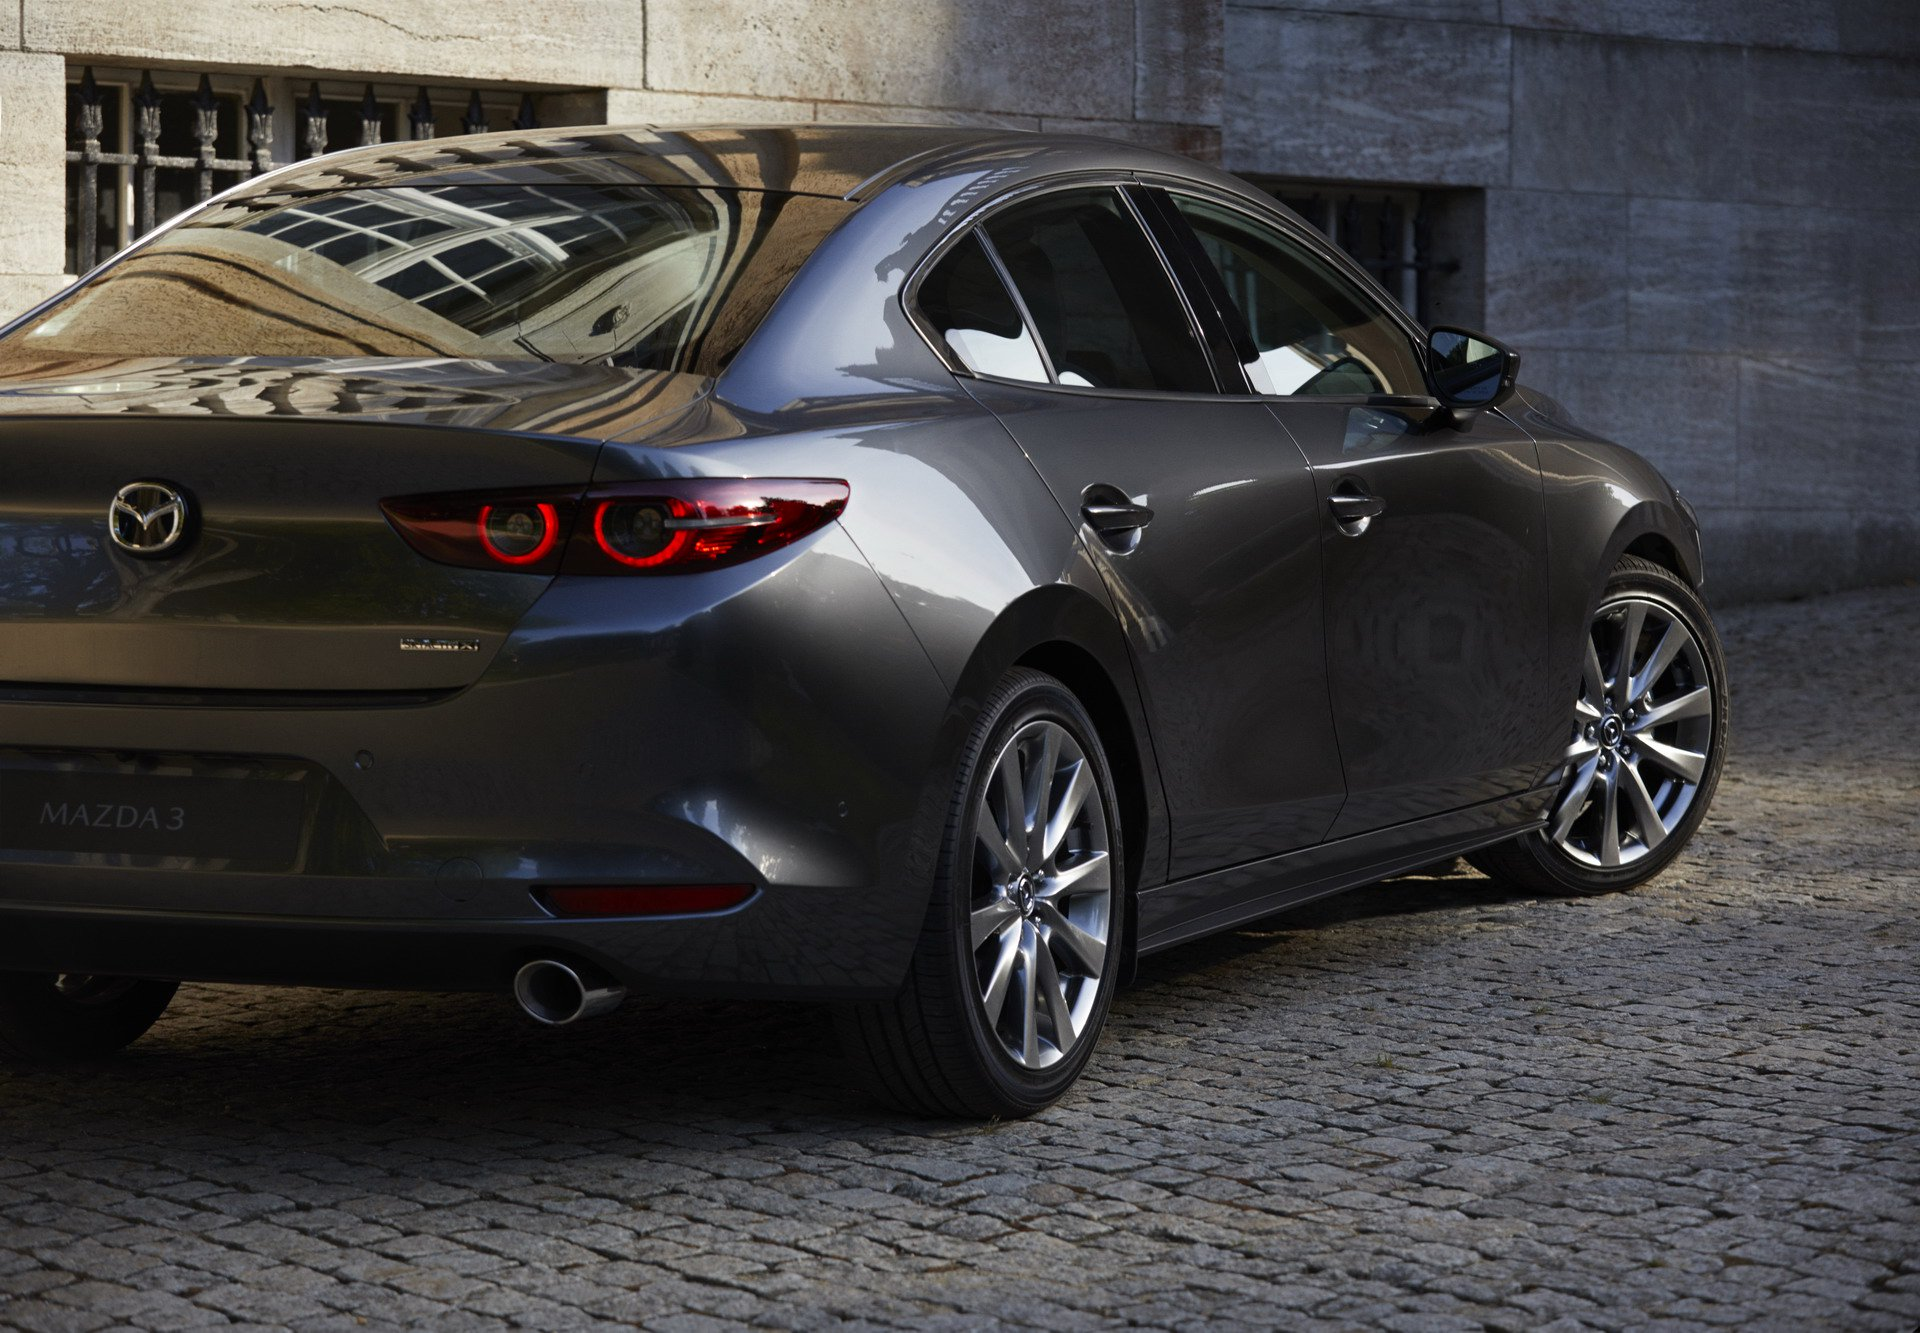 Mazda3 Hatchback and Mazda3 sedan 2019 (20)